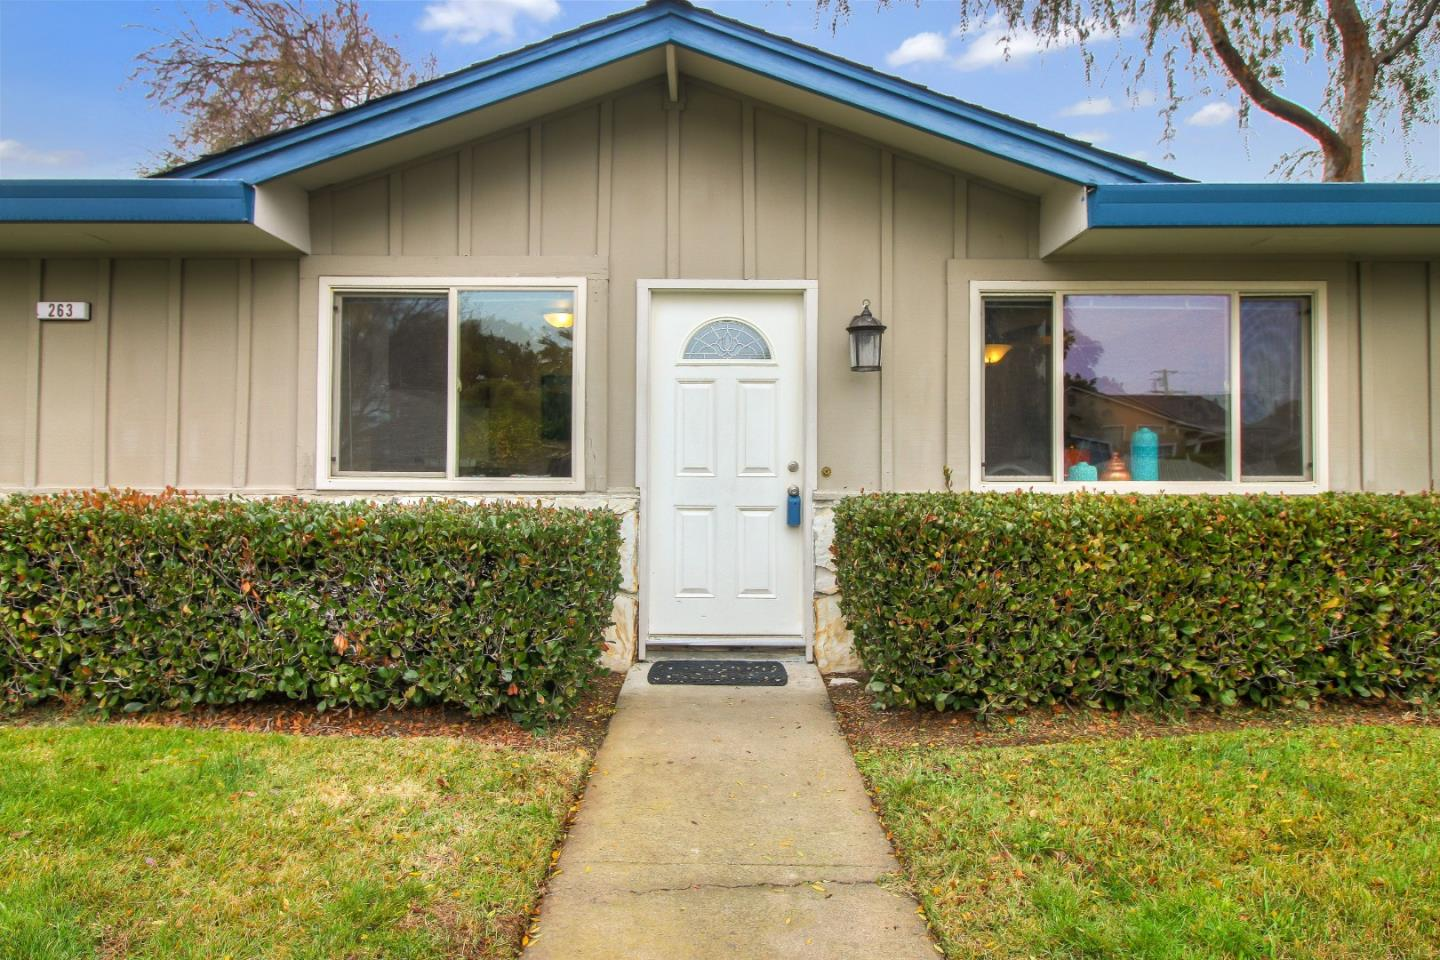 Convenient to downtown Campbell-Summer Concerts in the Park-Incredible Farmers Market-Hwy 85 & 880-Los Gatos Creek Trail-Light Rail-One story condo-Tiled kitchen with breakfast bar opens to the living room & front windows overlook the green lawn-gas forced air heat & AC-Community pool & grounds-Carport with extra storage-coin operated laundry room-